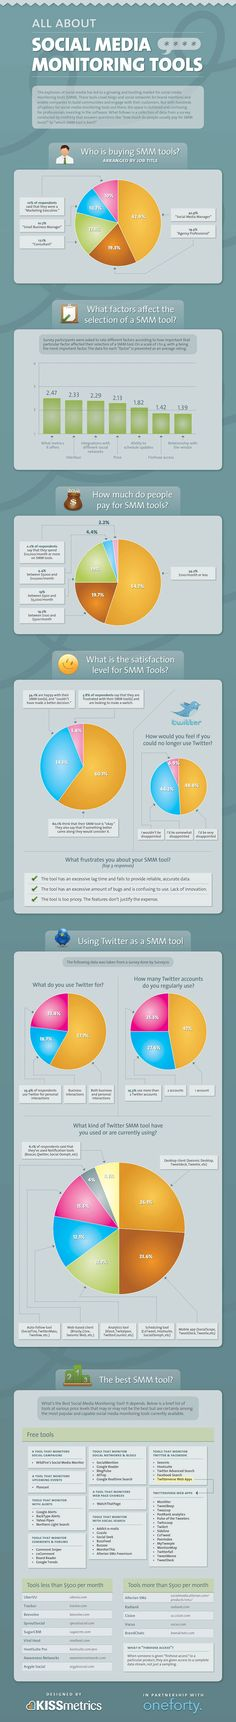 Social media tools    Great infographic by KISSmetrics which rounds up the main aspects to consider when purchasing a social media monitoring tool. How much do people actually pay for them and what are the best tools out there? Did you know that over 2/3 of SMM tool purchasers aren't exactly happy with their choice? Maybe this infographic will help you in the decision-making process.